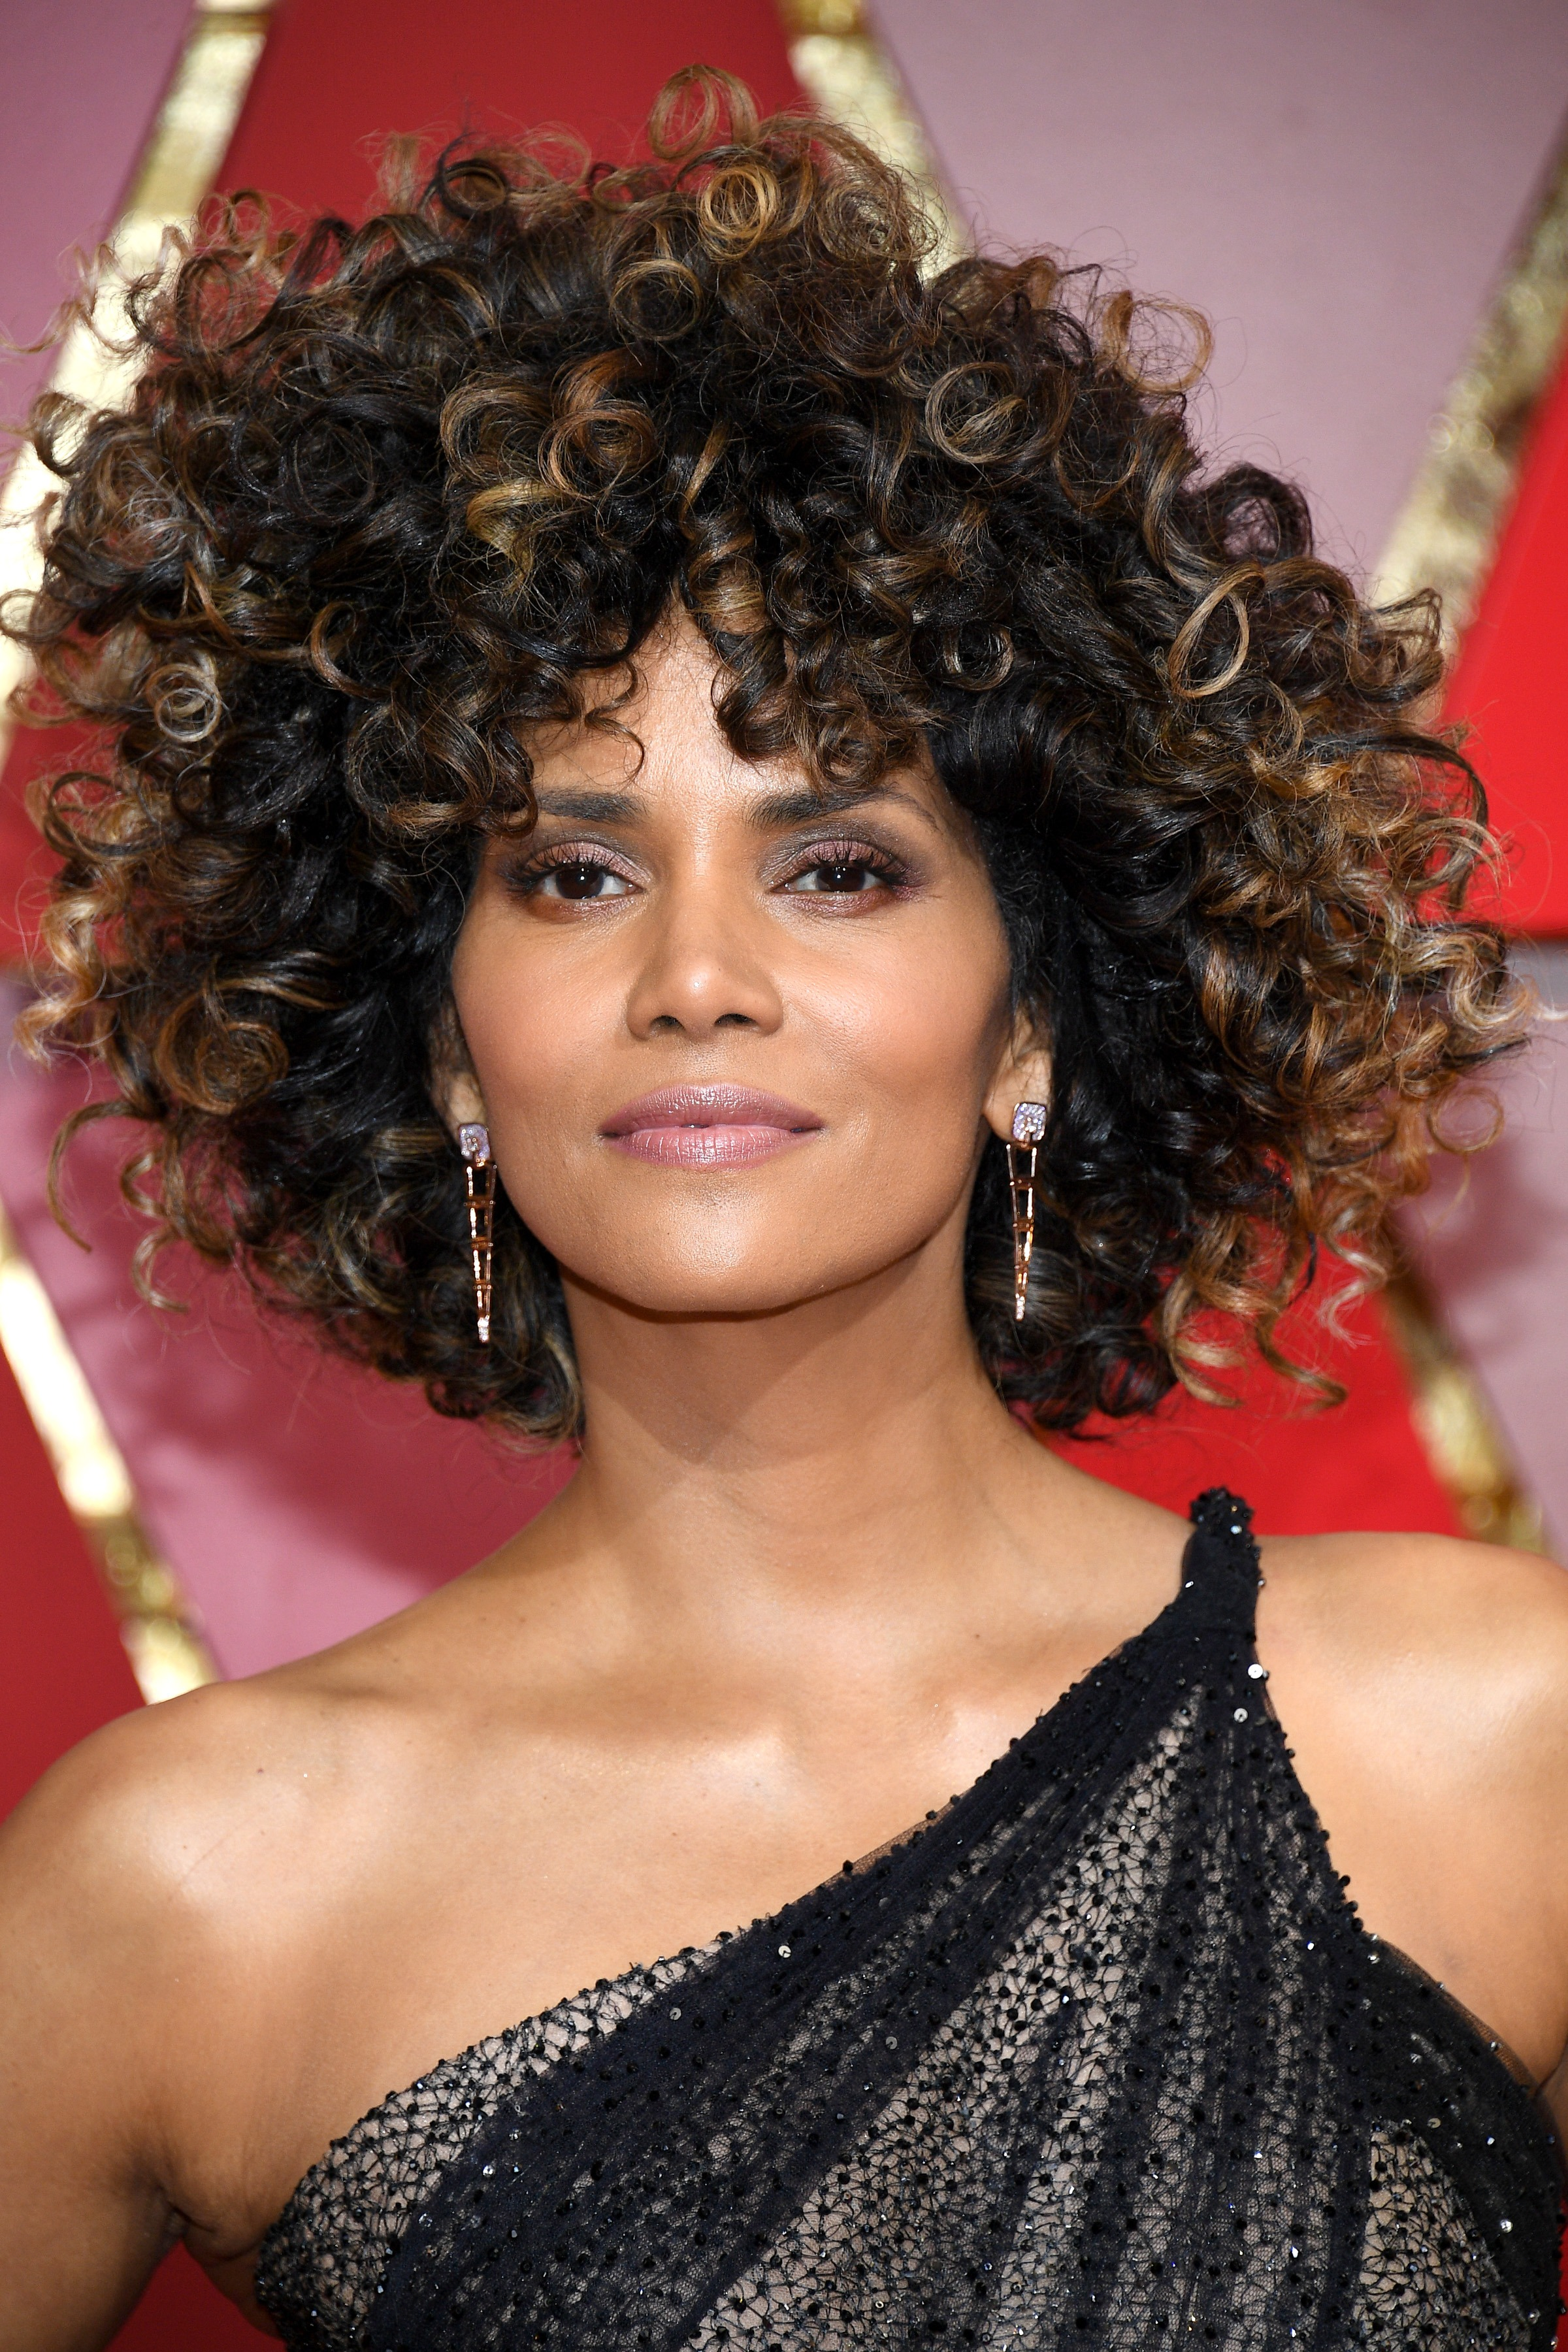 Halle Berry Curly Bob Hairstyles 2017 at Oscars